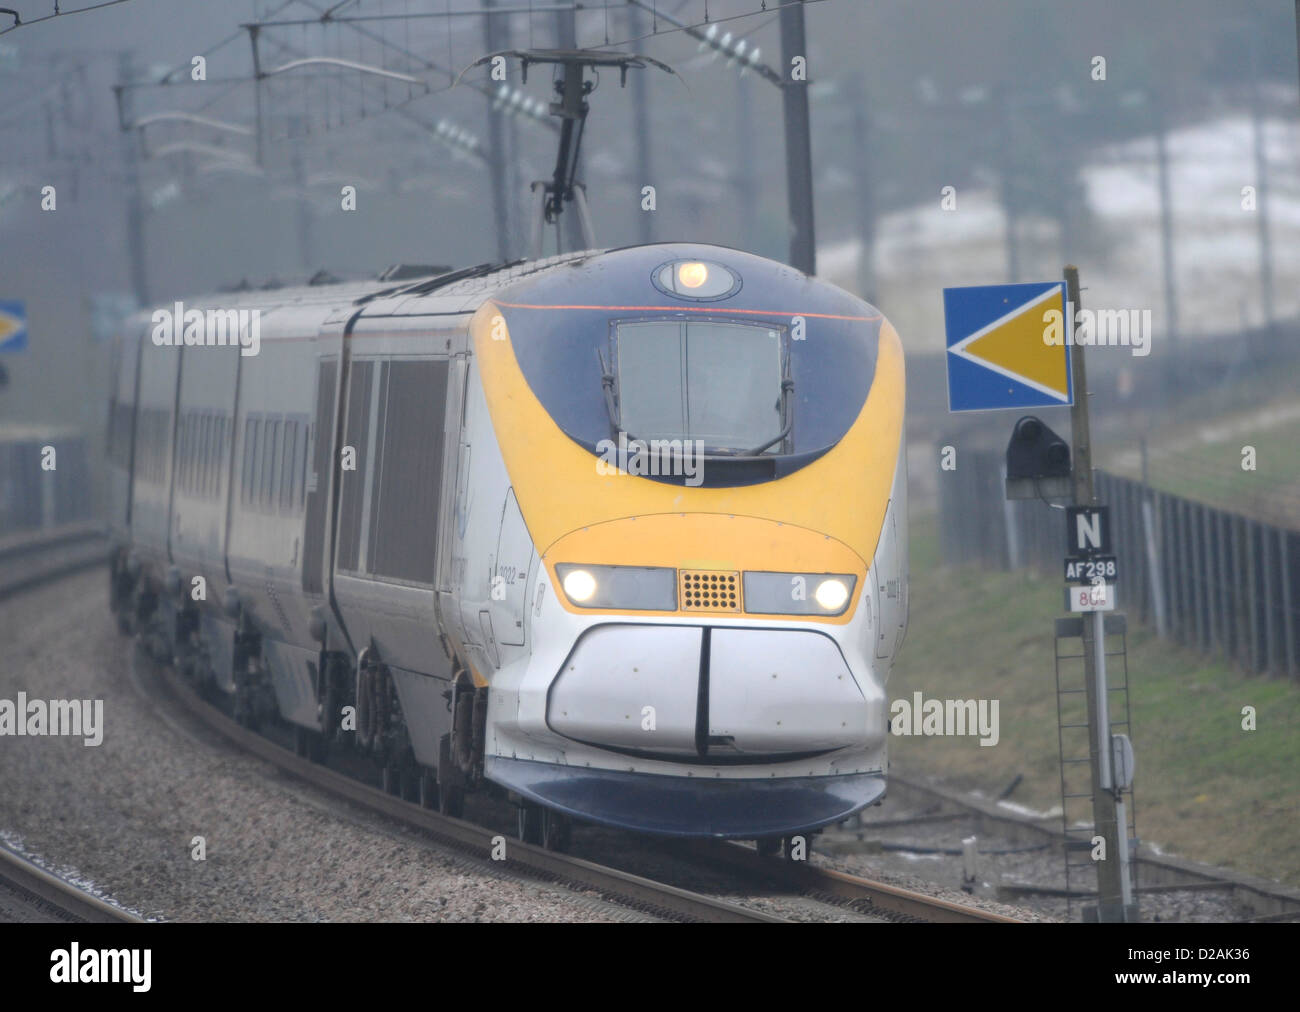 Eurostar rounds a bend near Pluckley, Kent on the way to the continent, 18th January 2013. Stock Photo